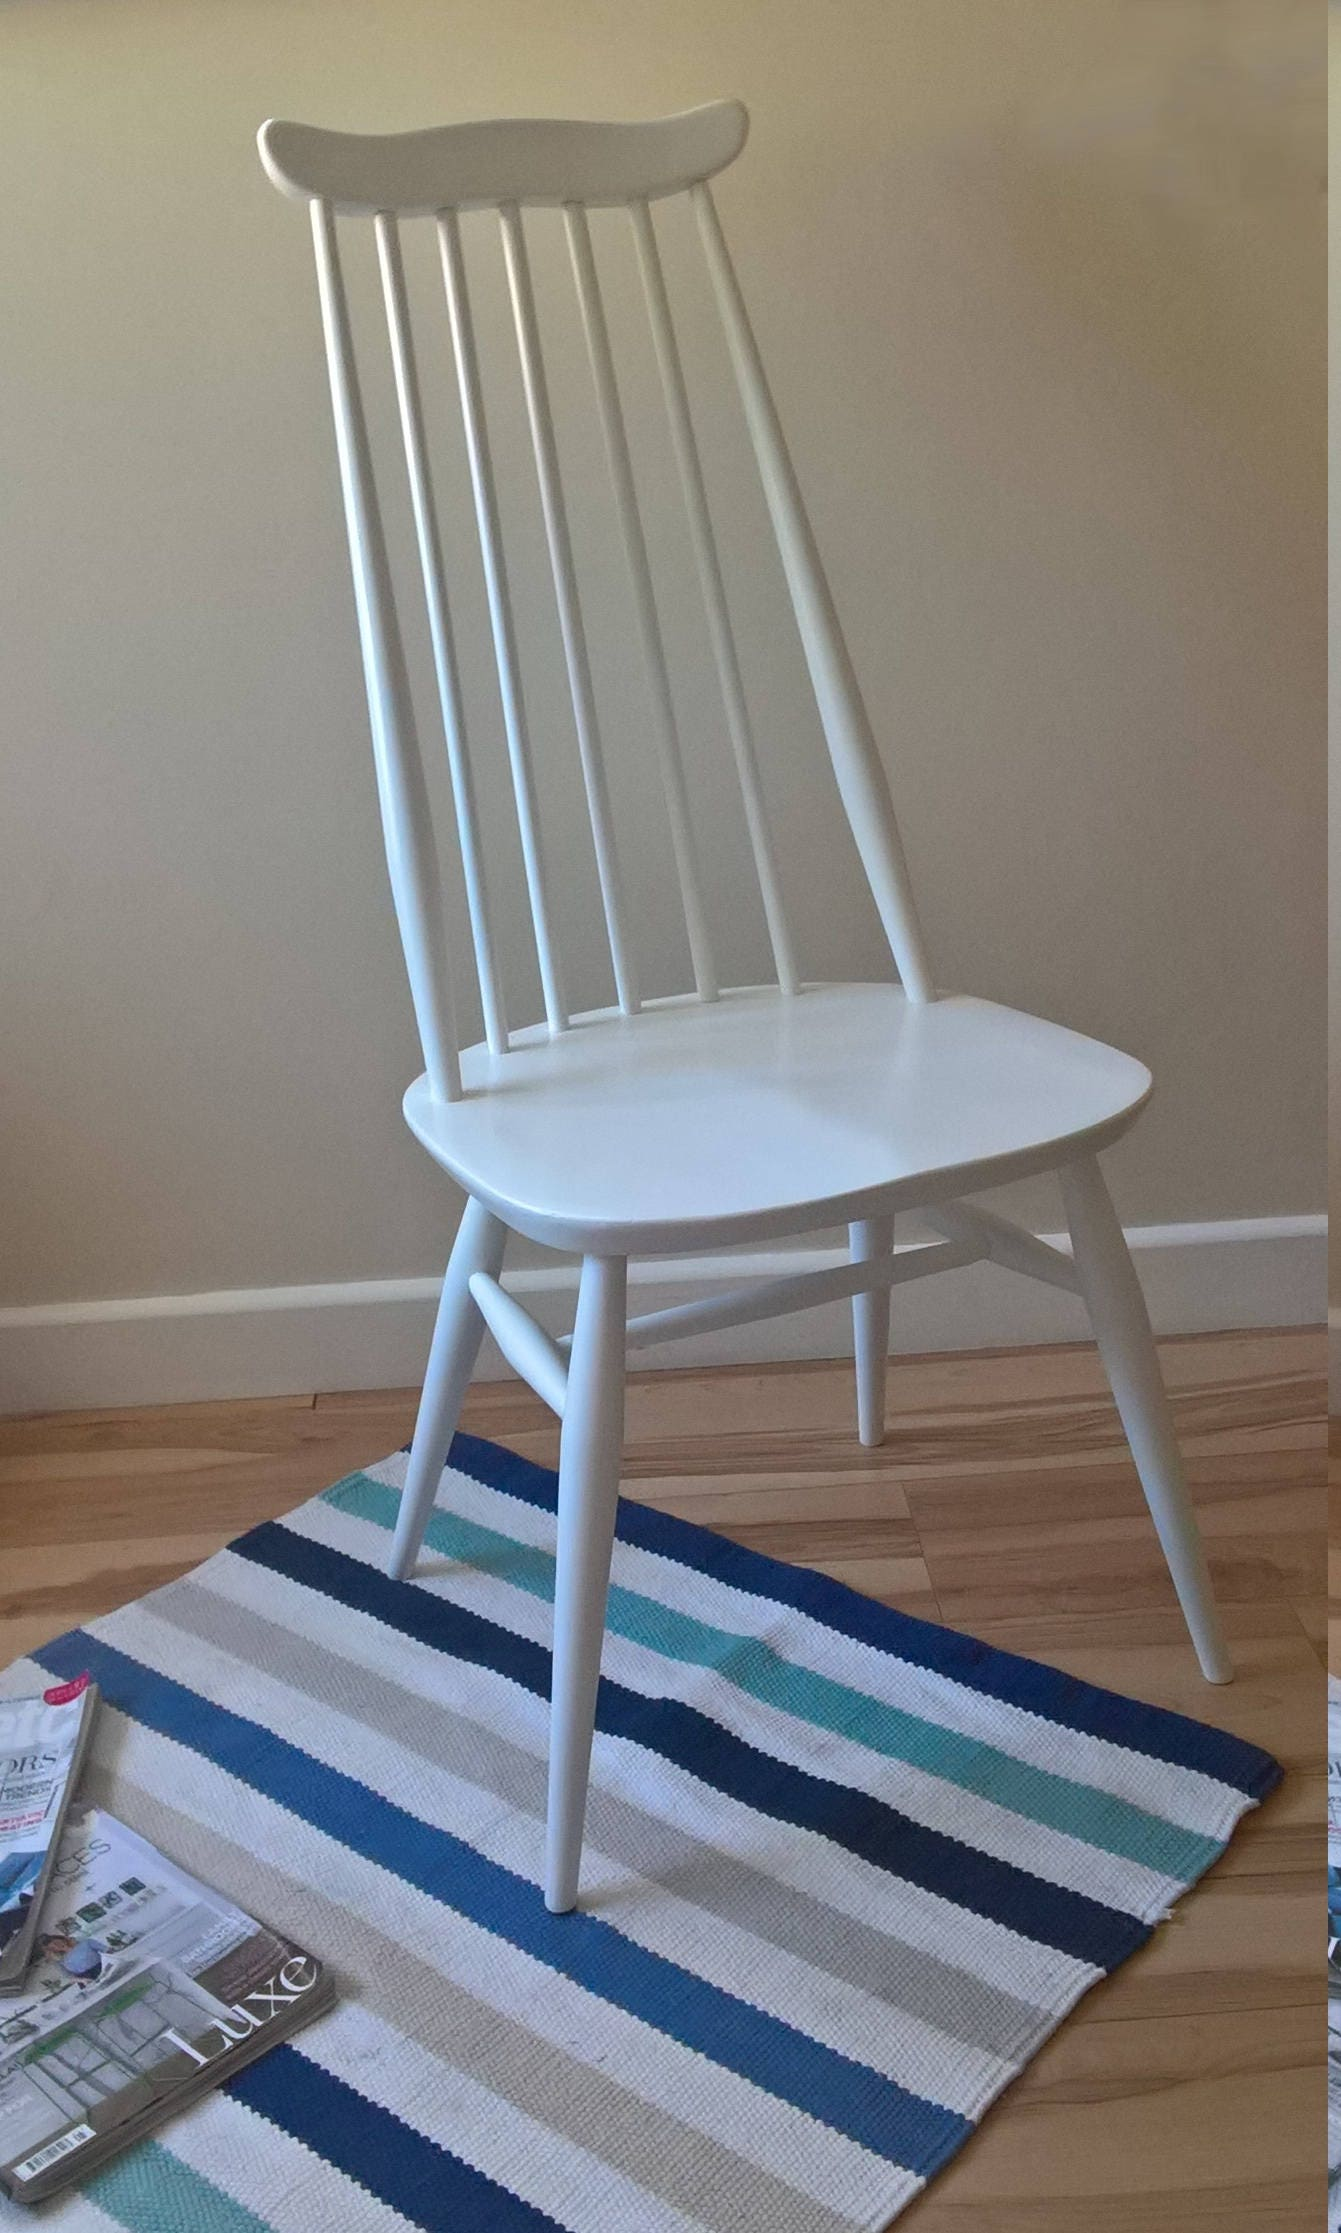 Ercol Goldsmith Contemporary Chair from 196077 Refurbished in Pure White Rust Oleum Spray